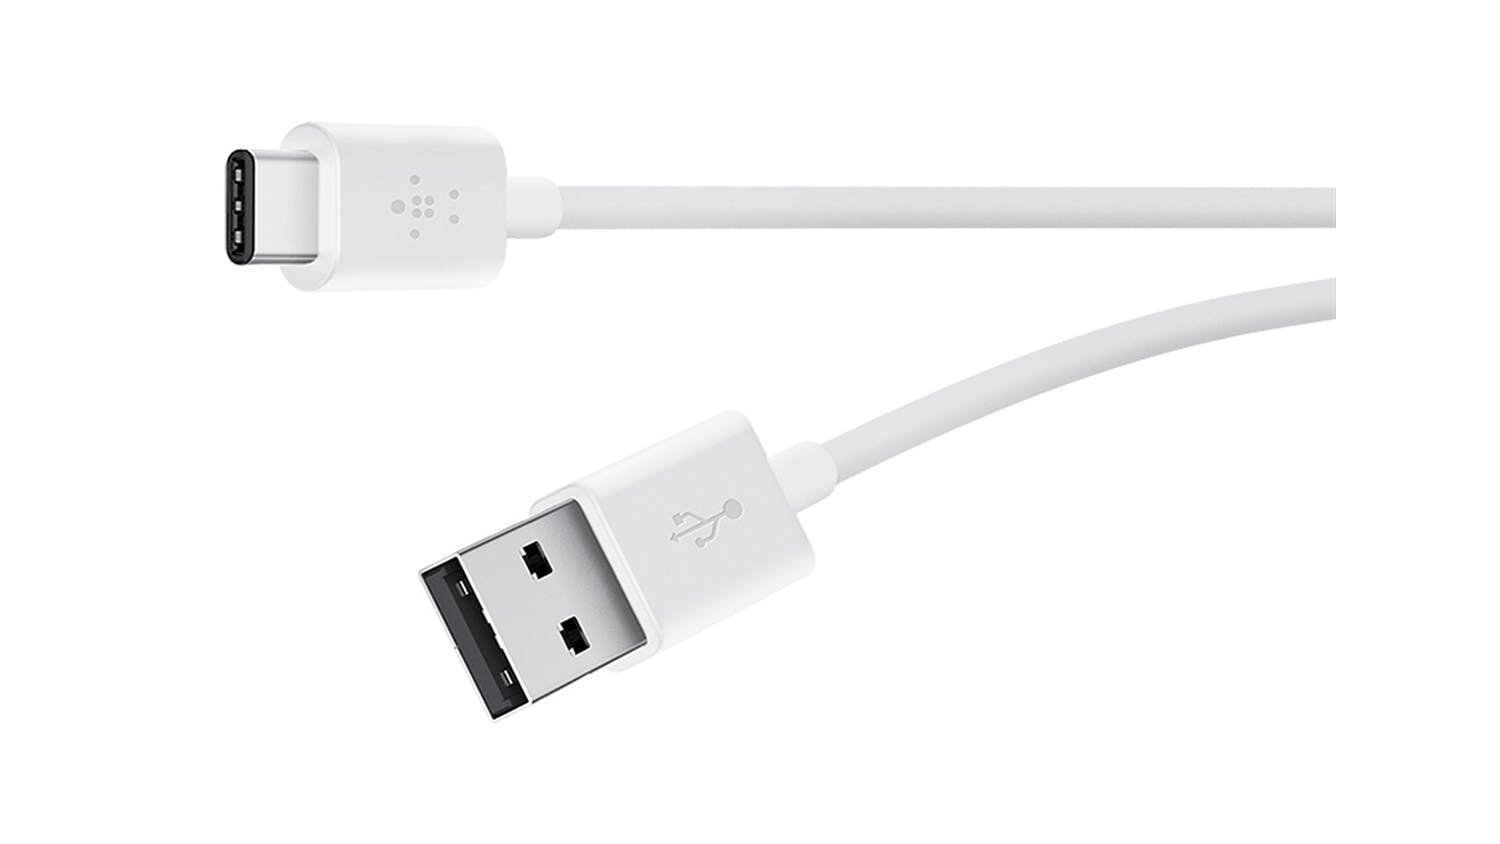 Belkin MIXIT 2.0 USB-A to USB-C Charge Cable - 1.8m